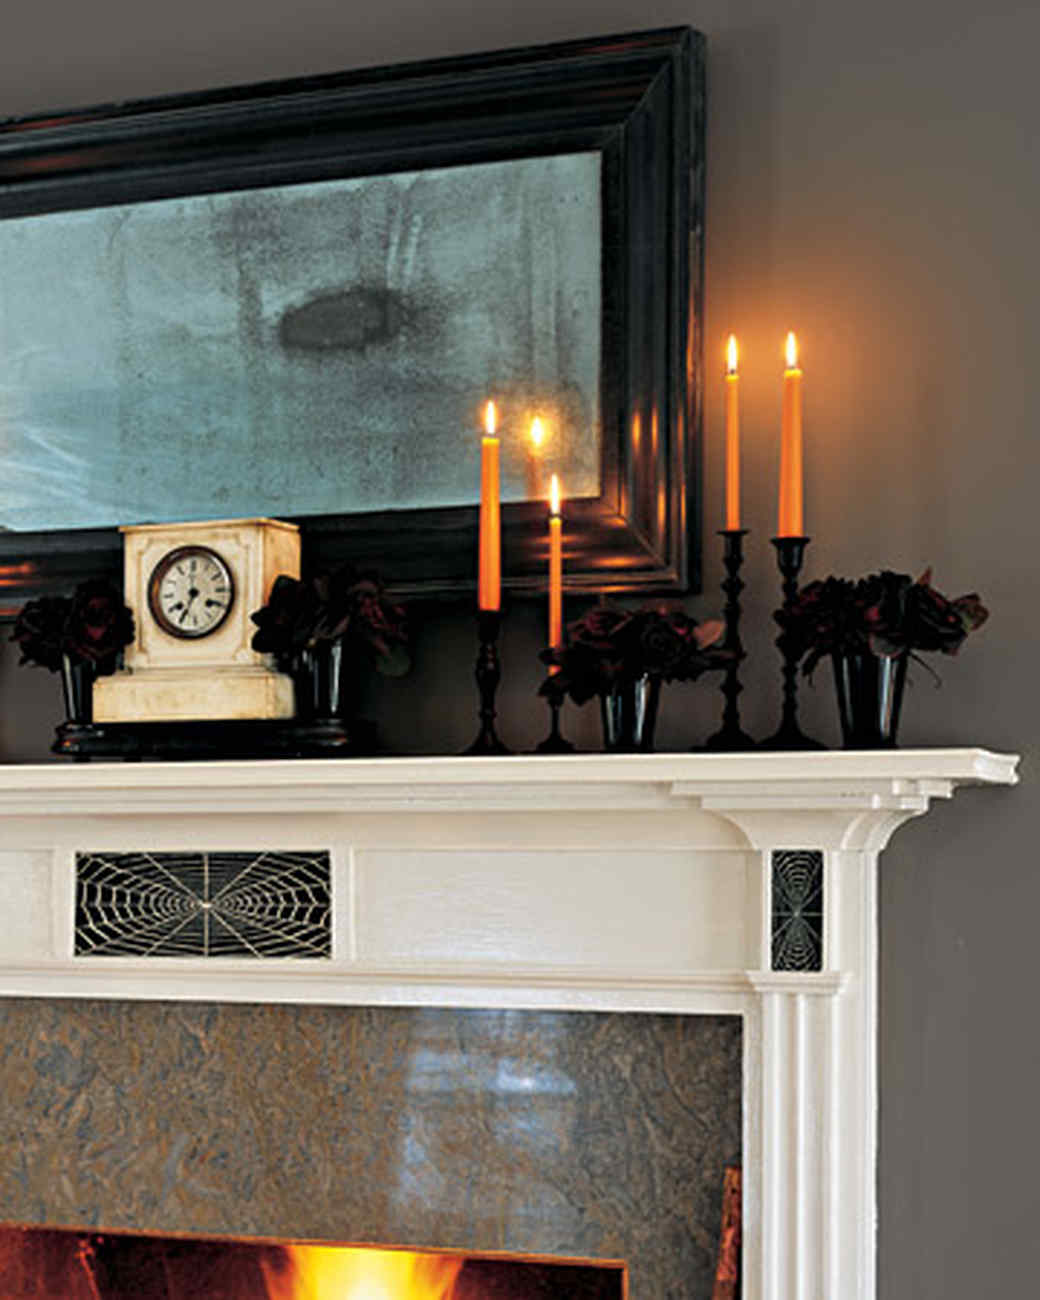 Fireplace Halloween Decorations: Halloween Crafts Ideas